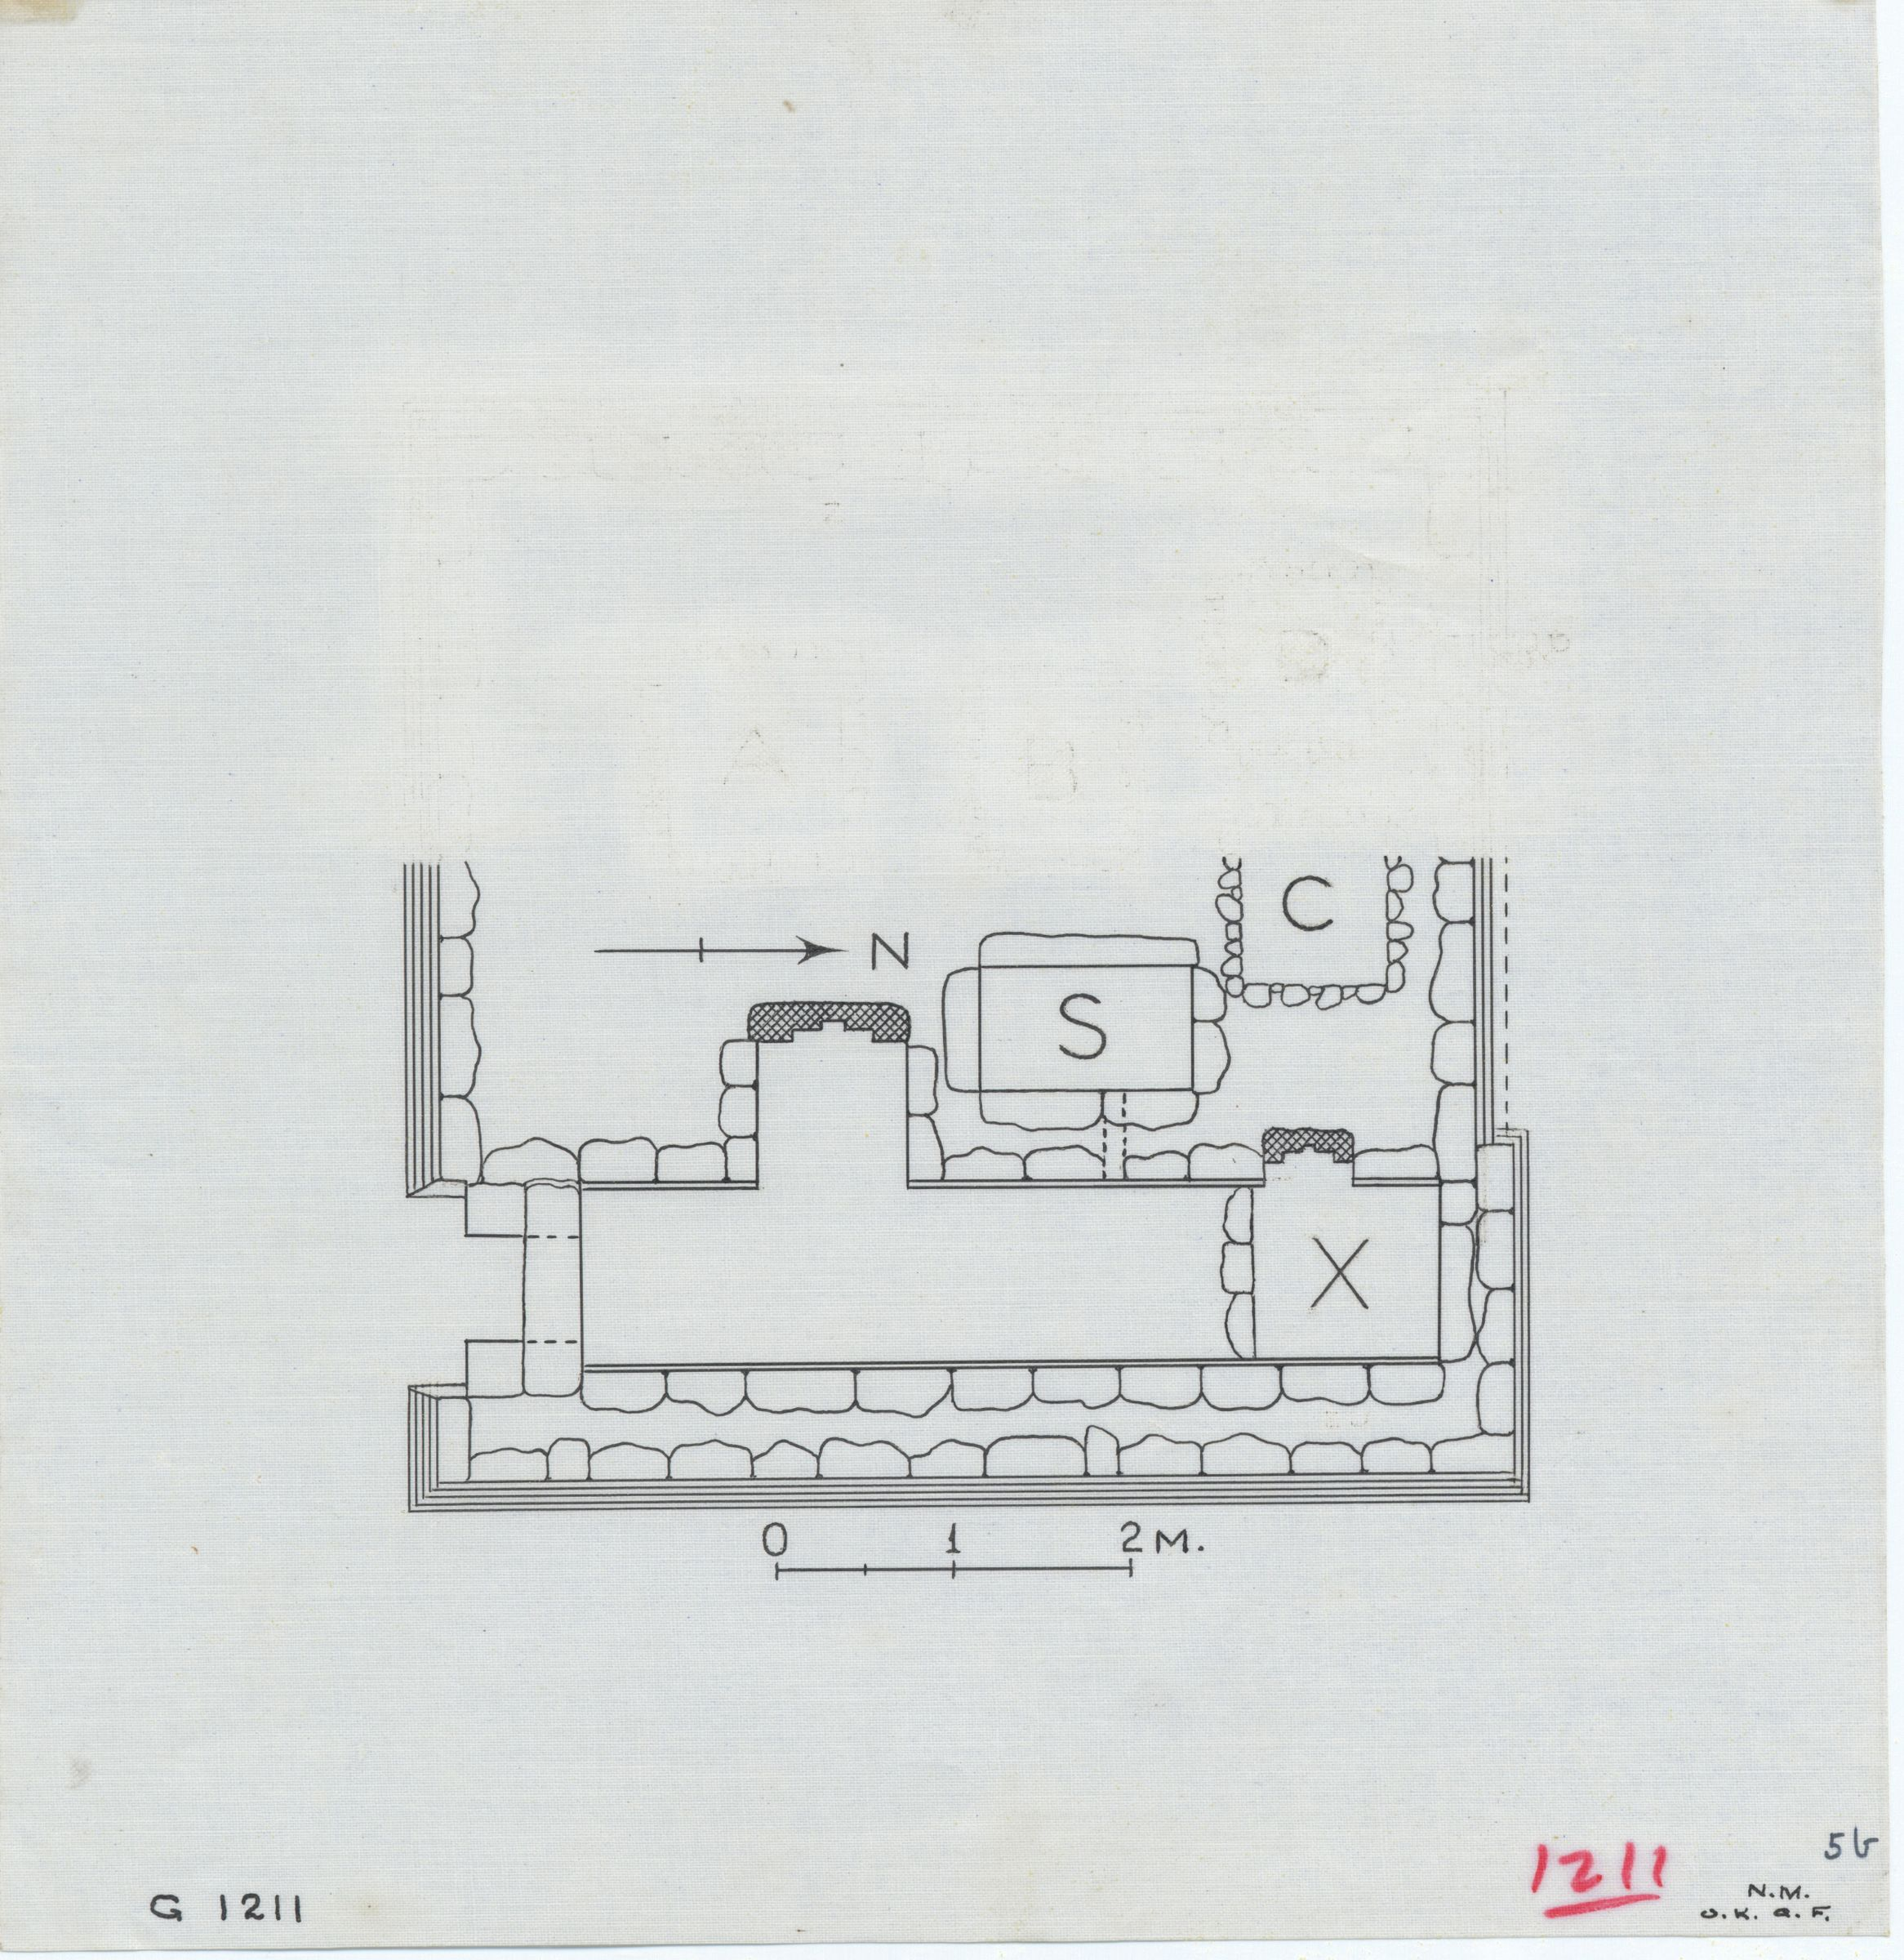 Maps and plans: G 1211, Plan of chapel, with serdab and shafts C and X